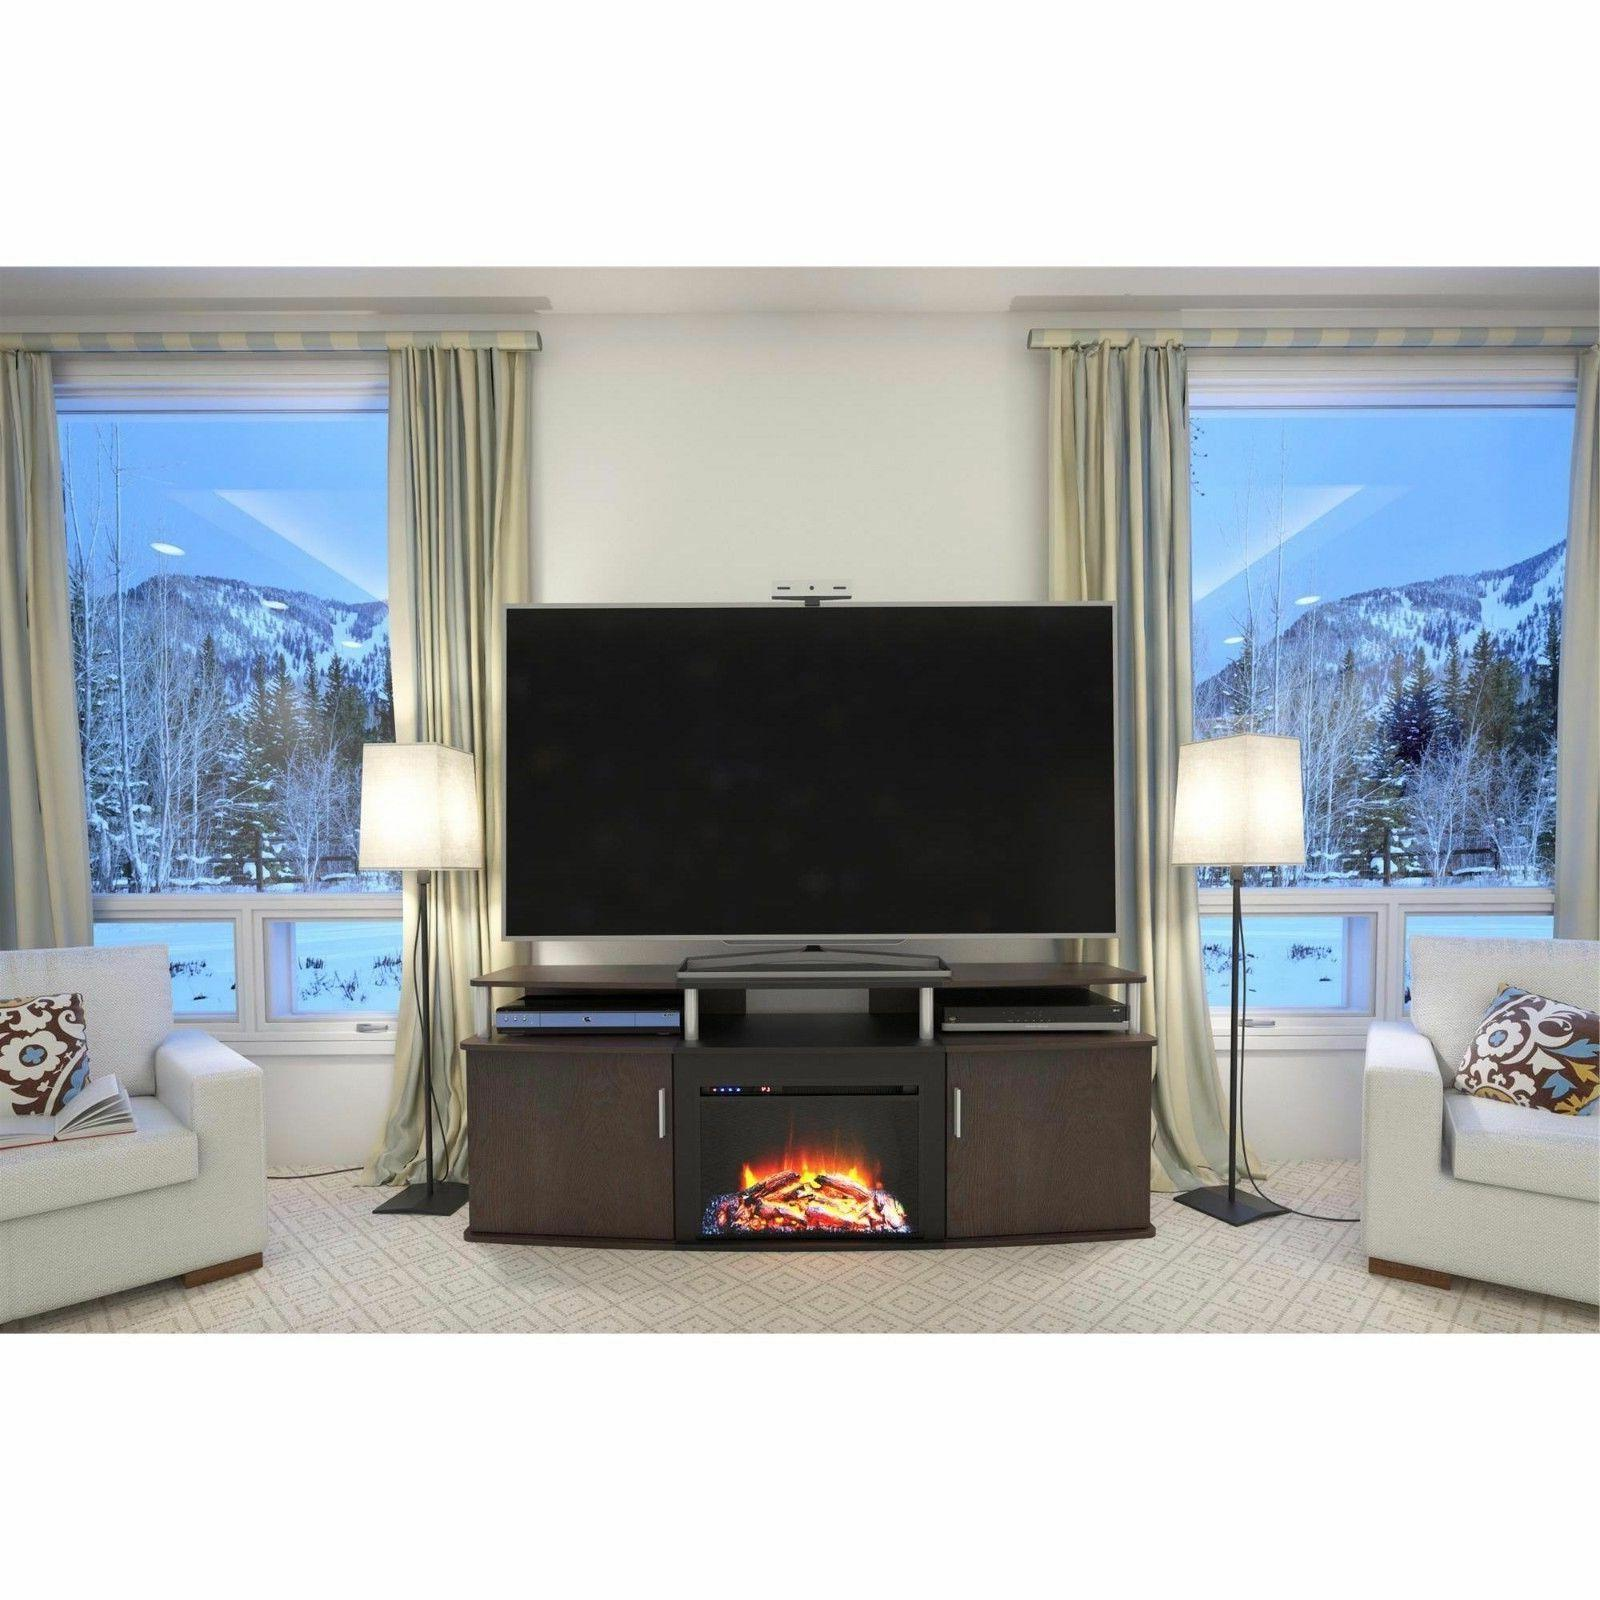 65 Fireplace Electric BTU Storage Console